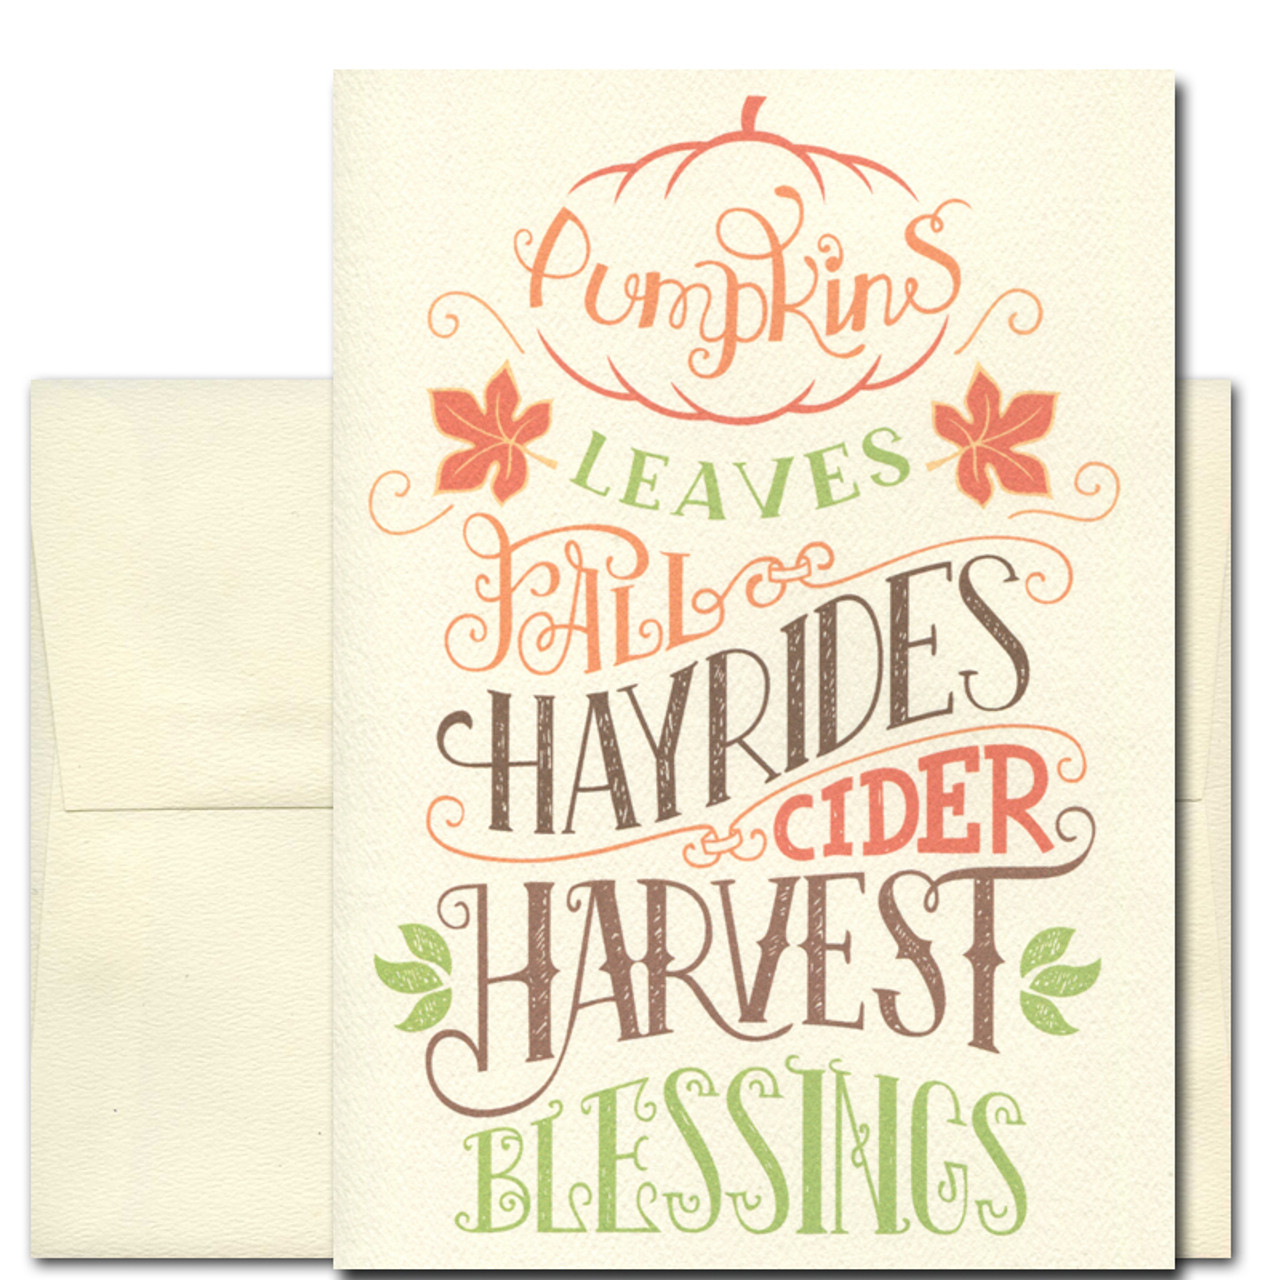 Fall Days card cover has hand-lettered wording: pumpkins, leaves, fall, hayrides, harvest, blessings